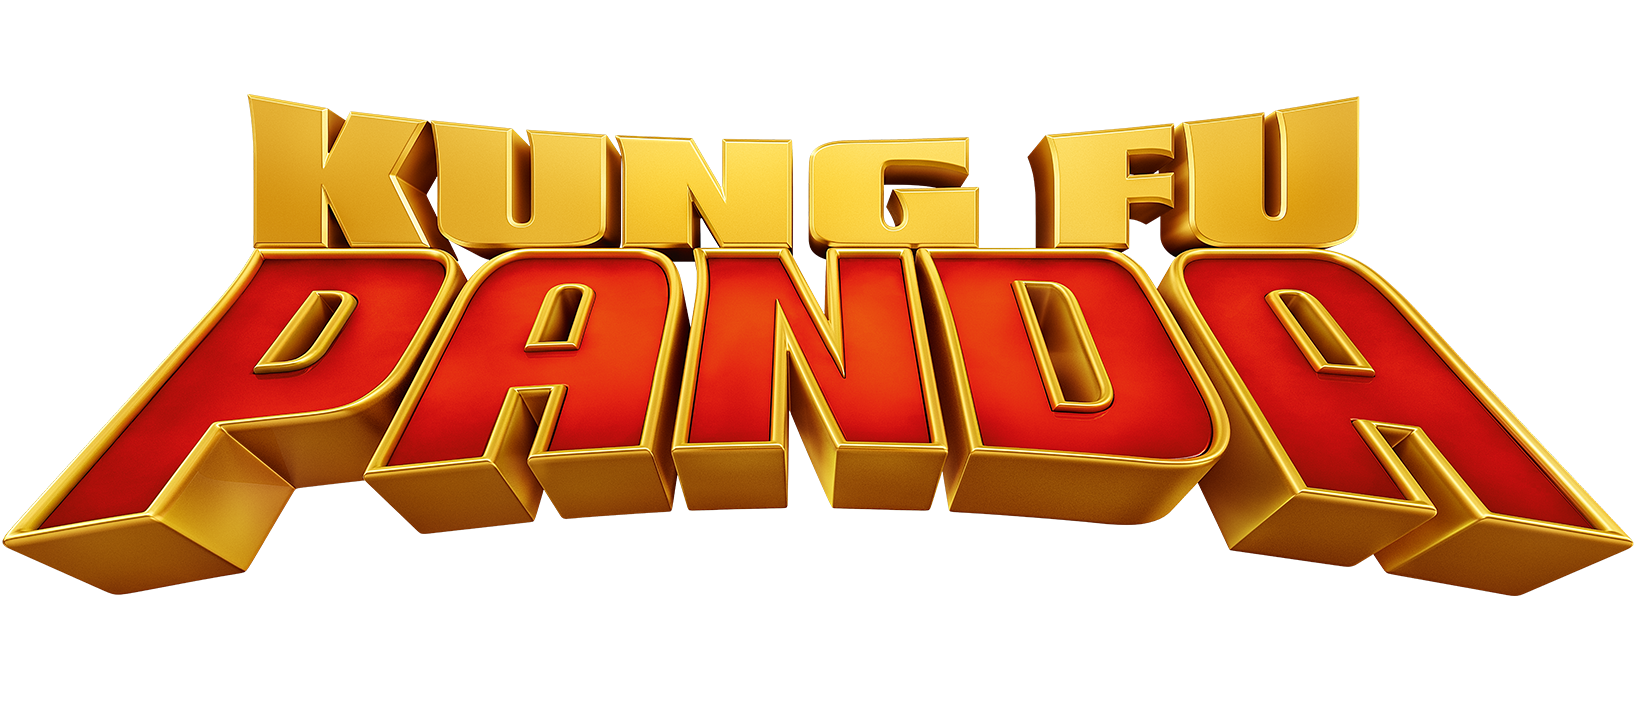 Kung fu panda logo png. Image result for pinterest